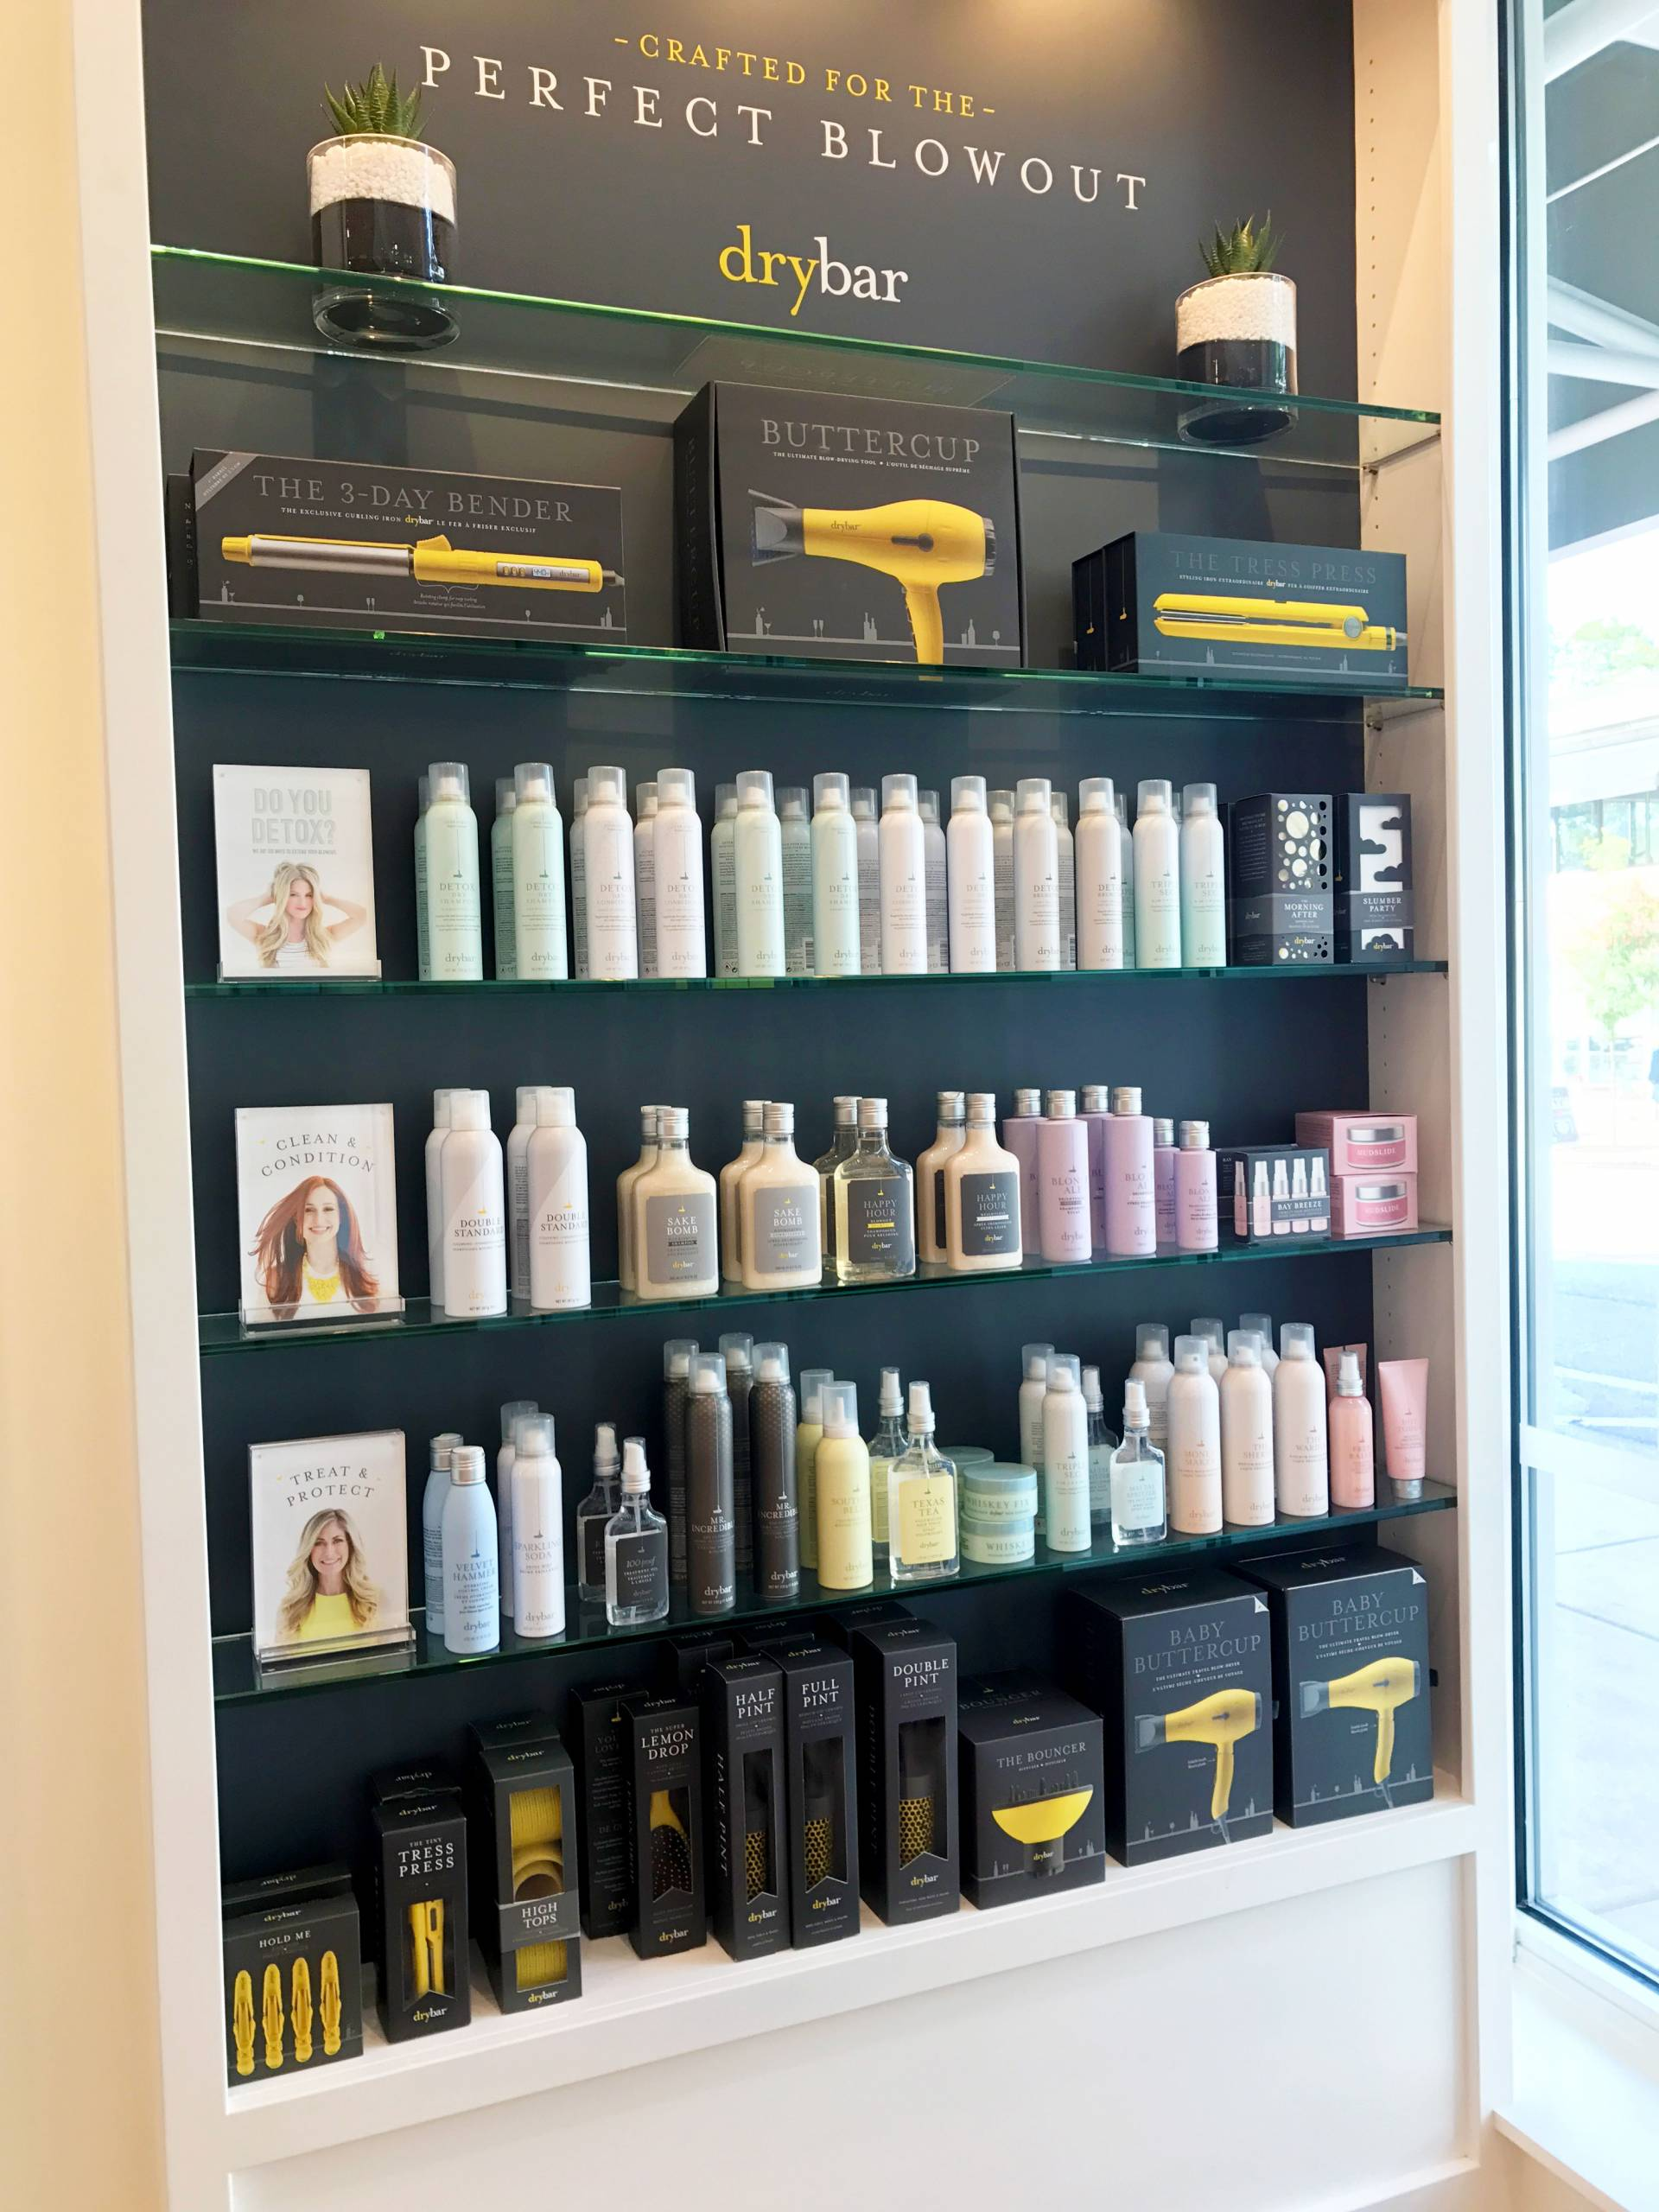 drybar products